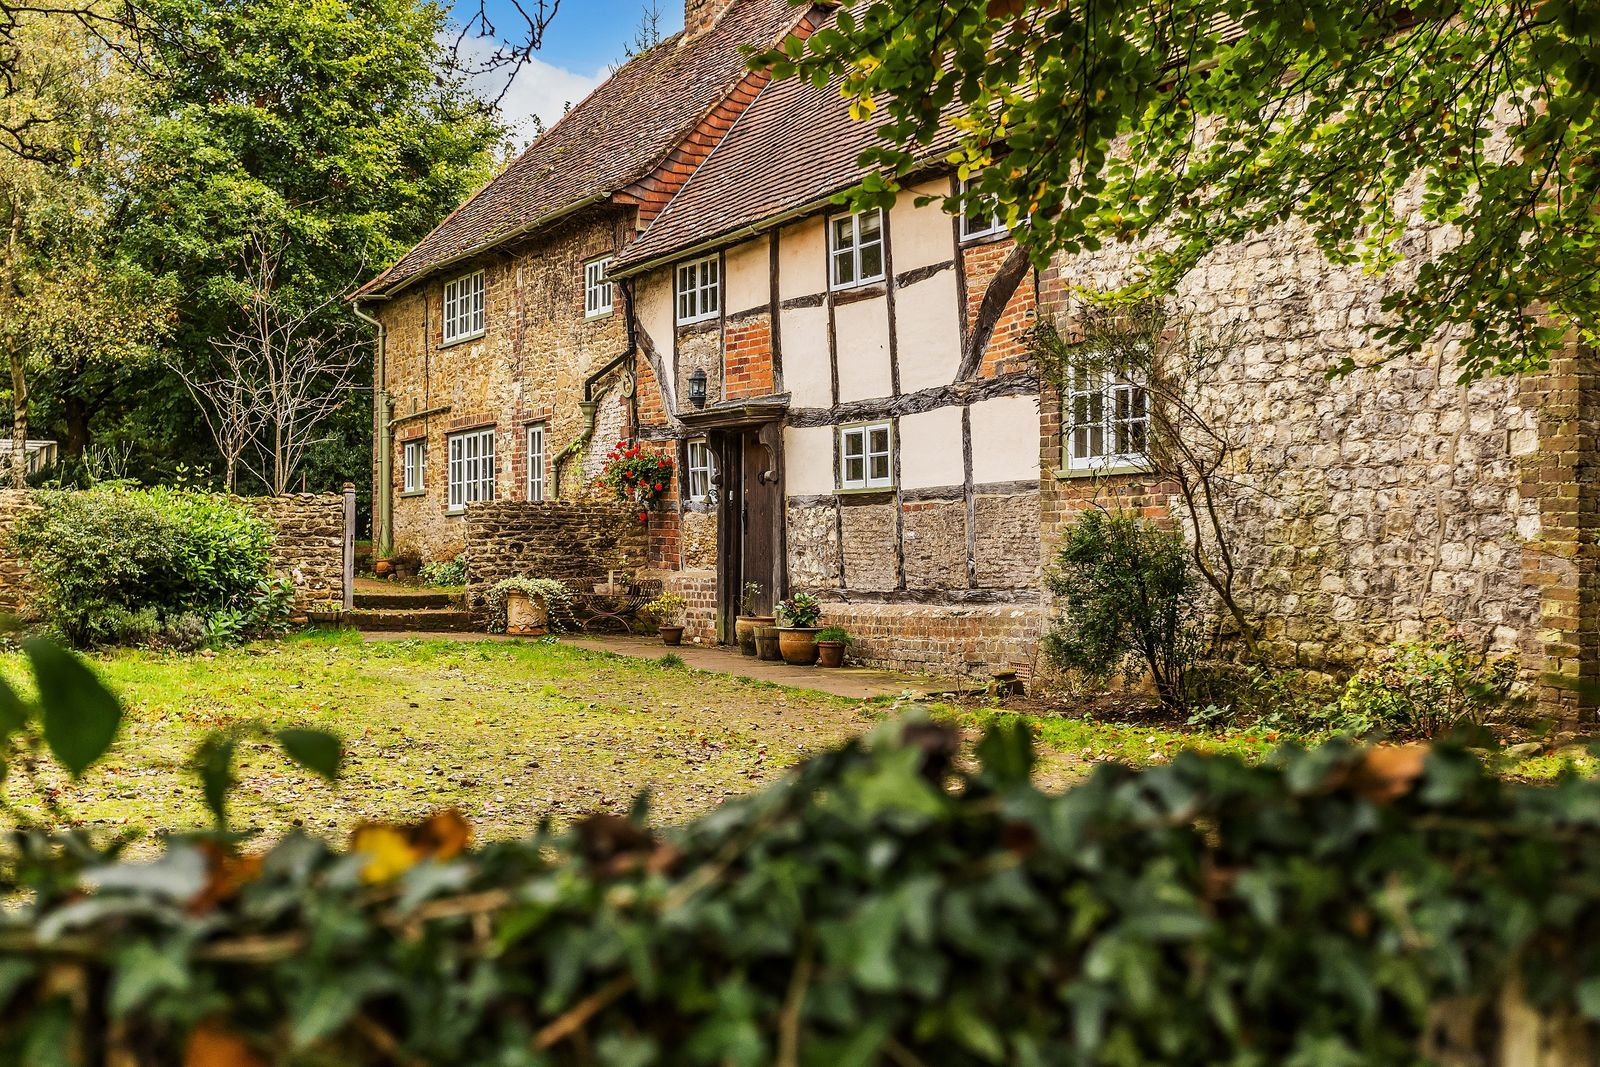 Beautiful 17th Century Surrey Cottage For Sale Is The Epitome Of English Country Charm English Cottage Exterior English Cottage Interiors Cottage Exterior